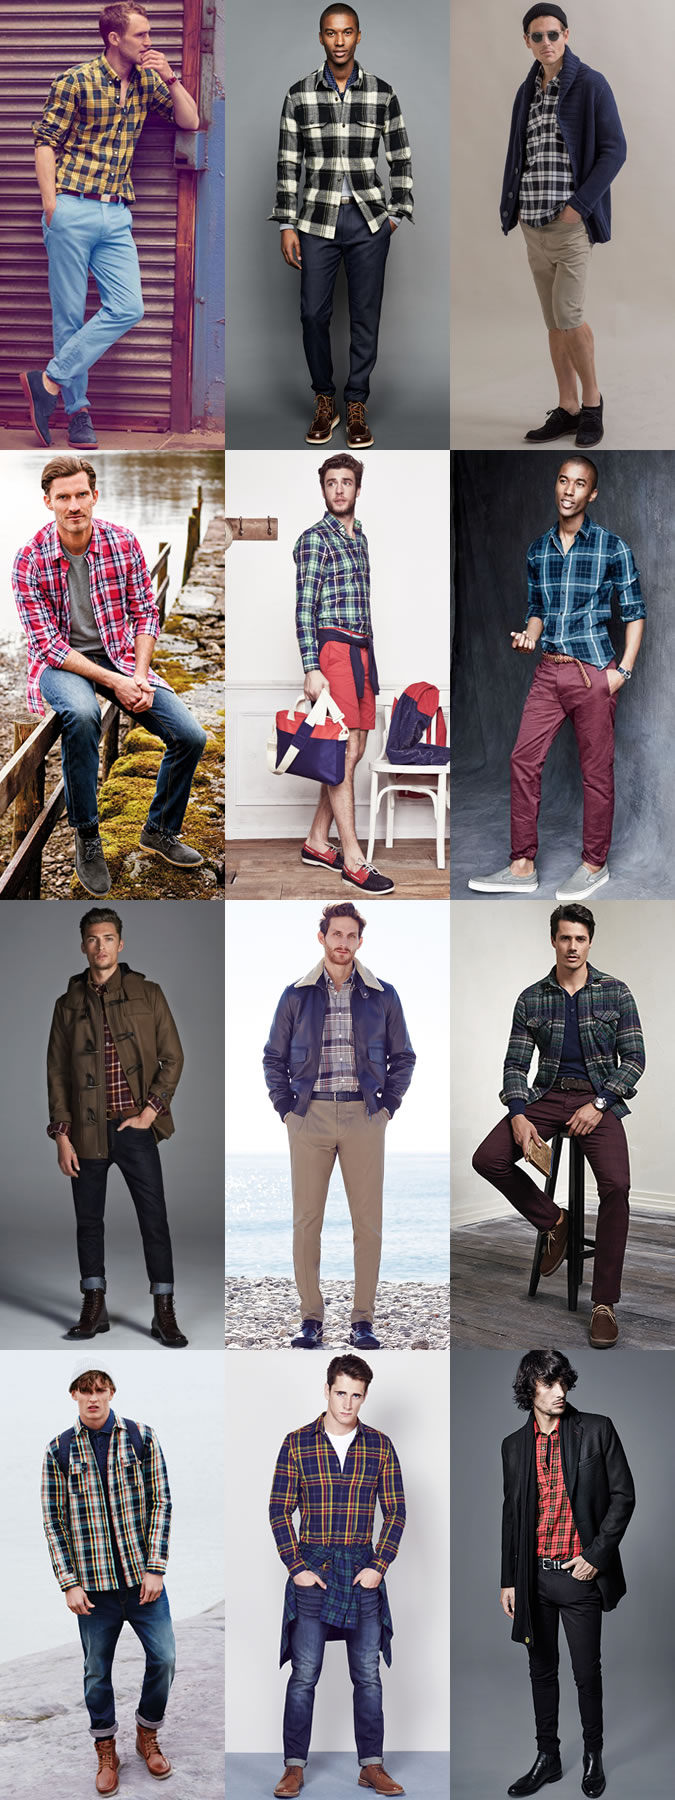 men plaid shirts